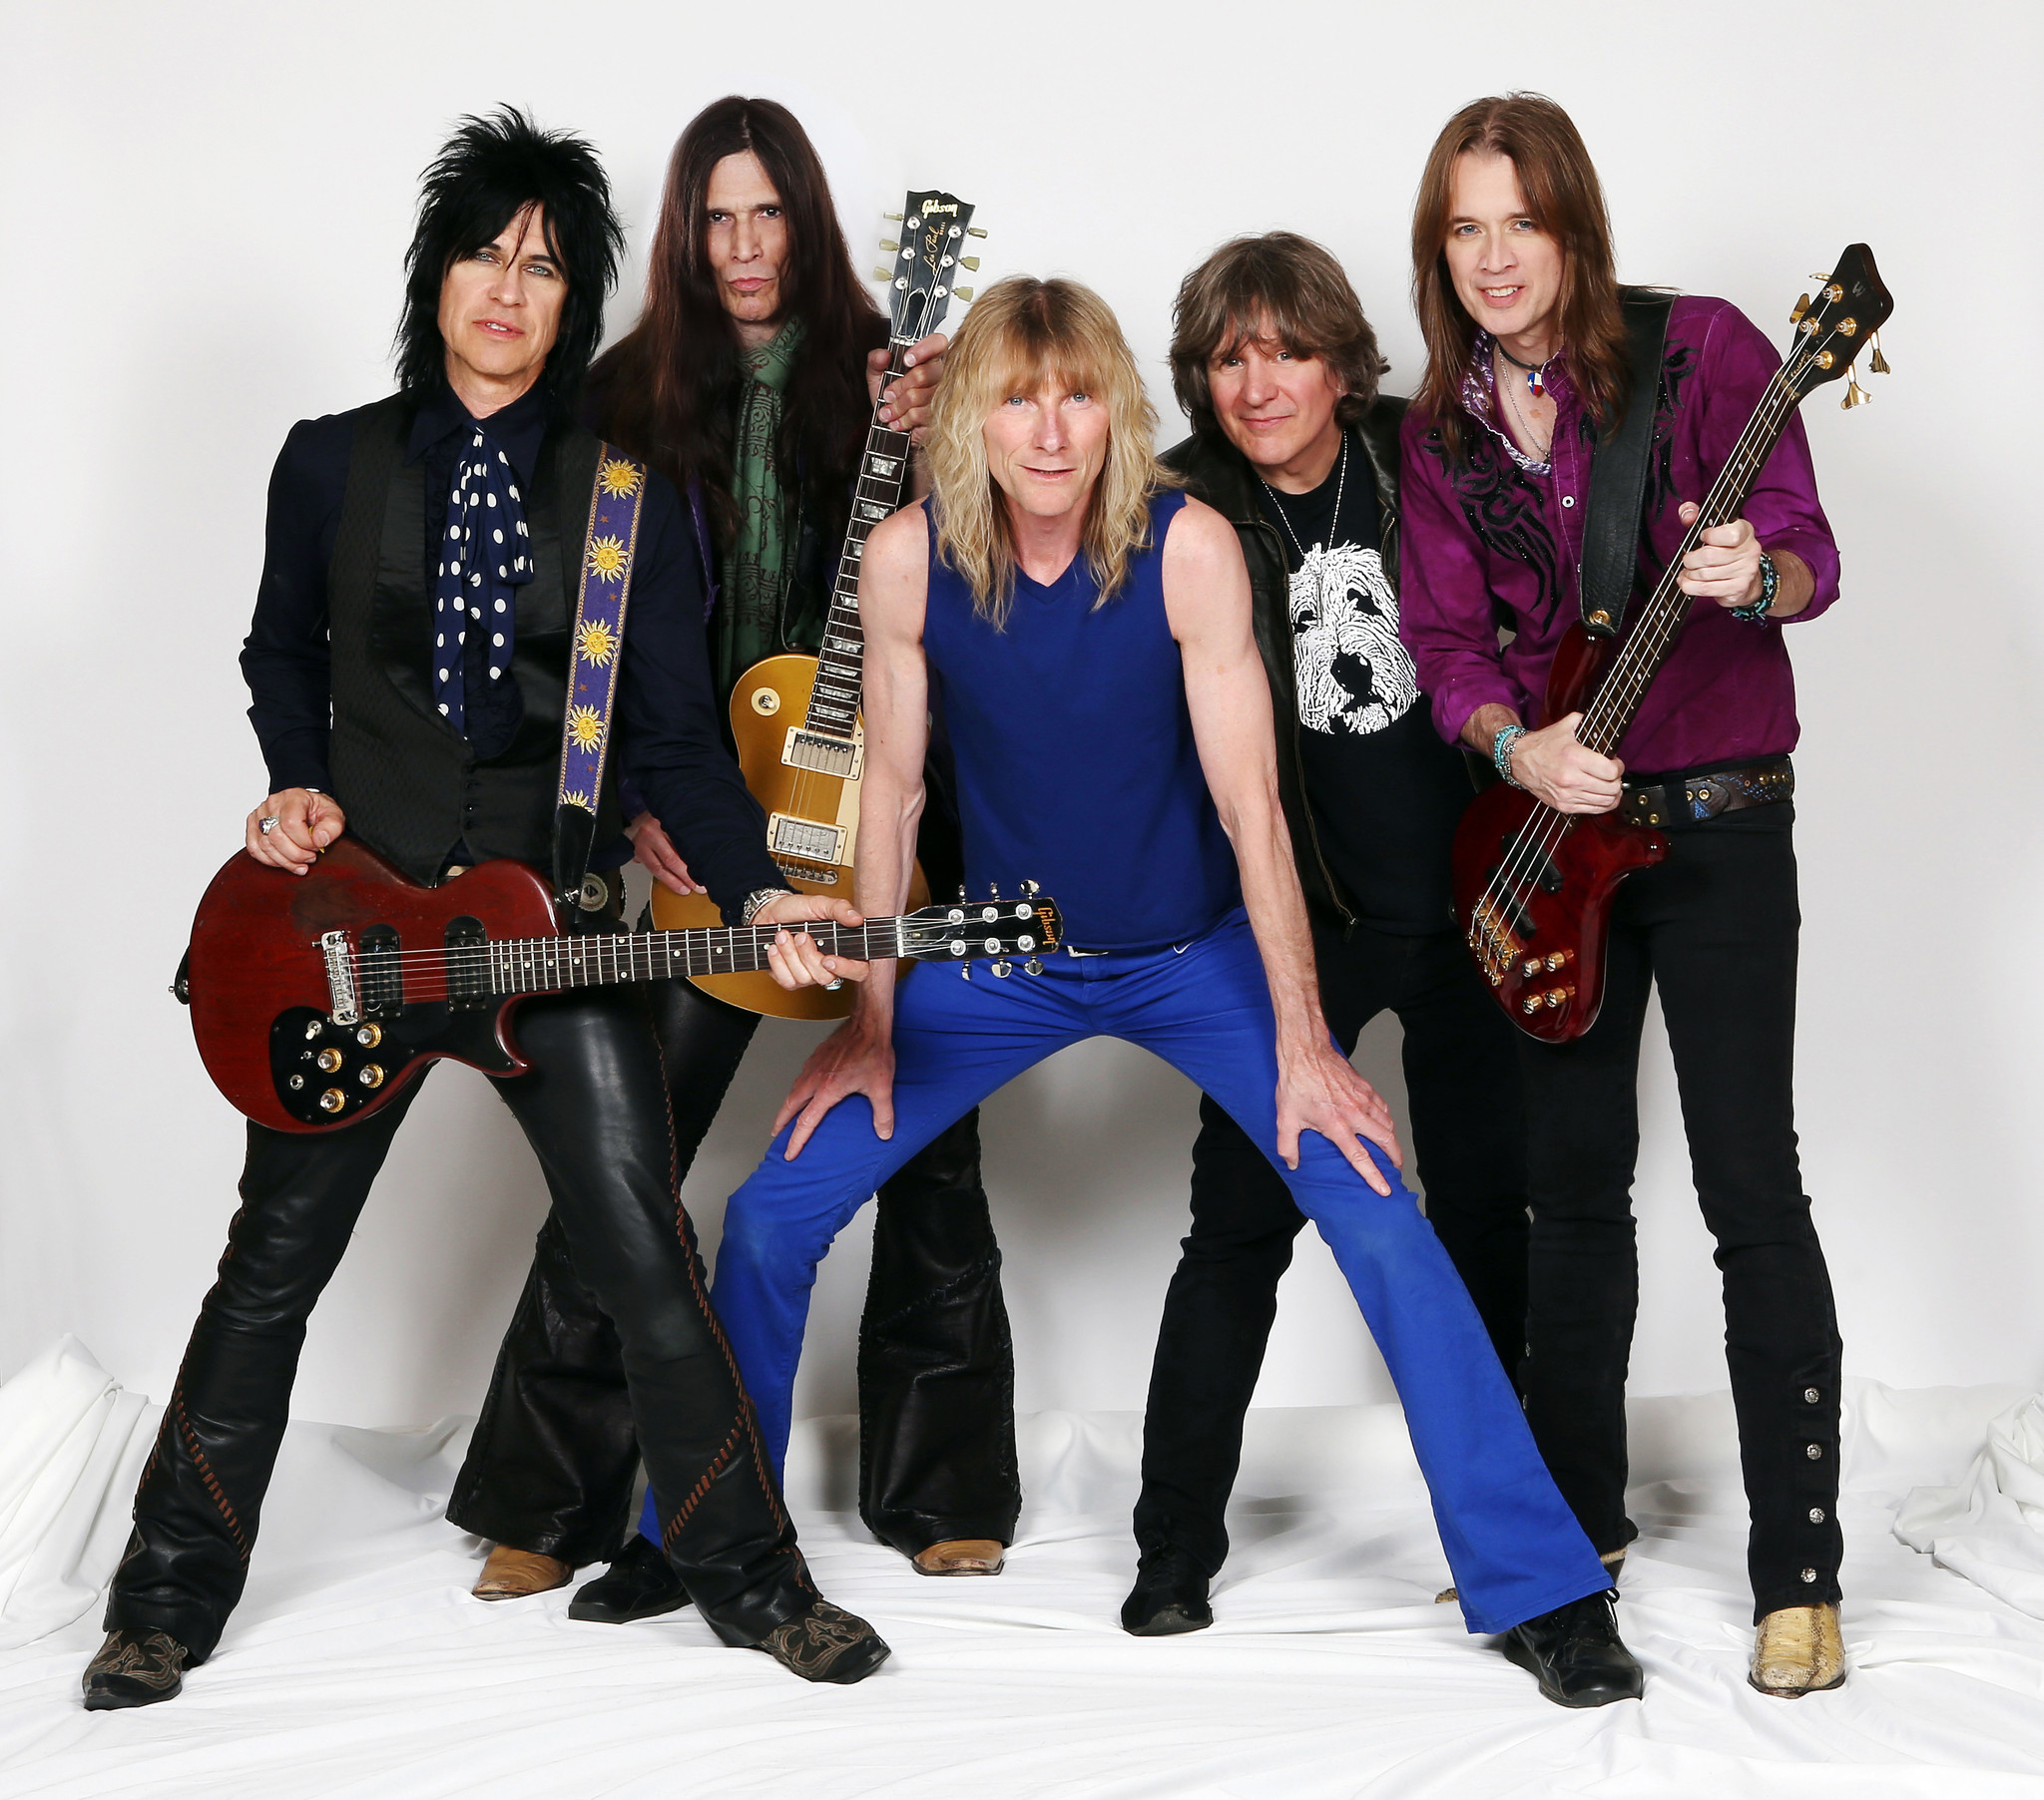 Kix, a Hagerstown band that released its first album in 1981, performs Saturday at Rams Head Live.